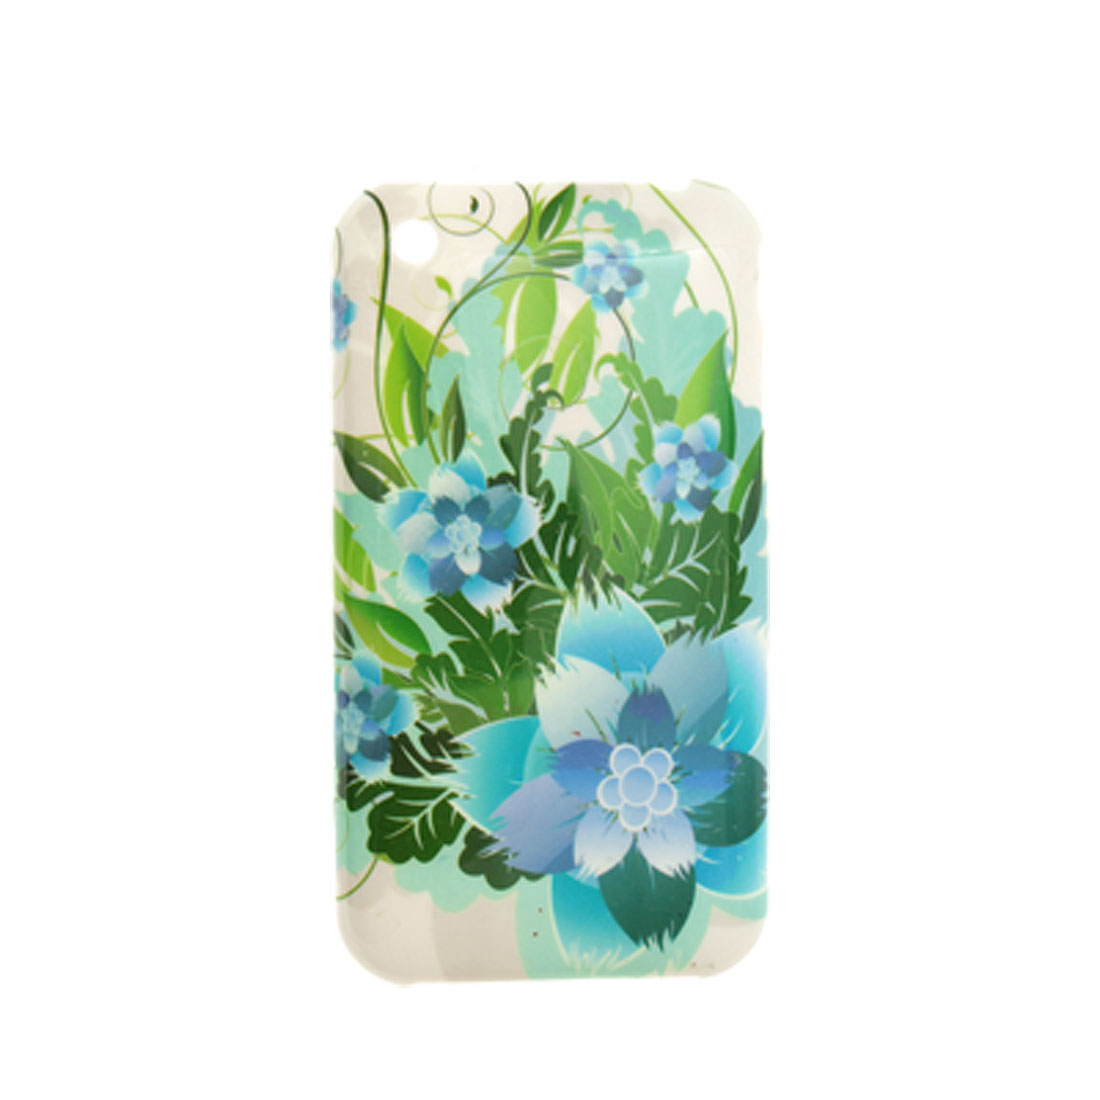 Floral Print Plastic Case Screen Guard for iPhone 3G